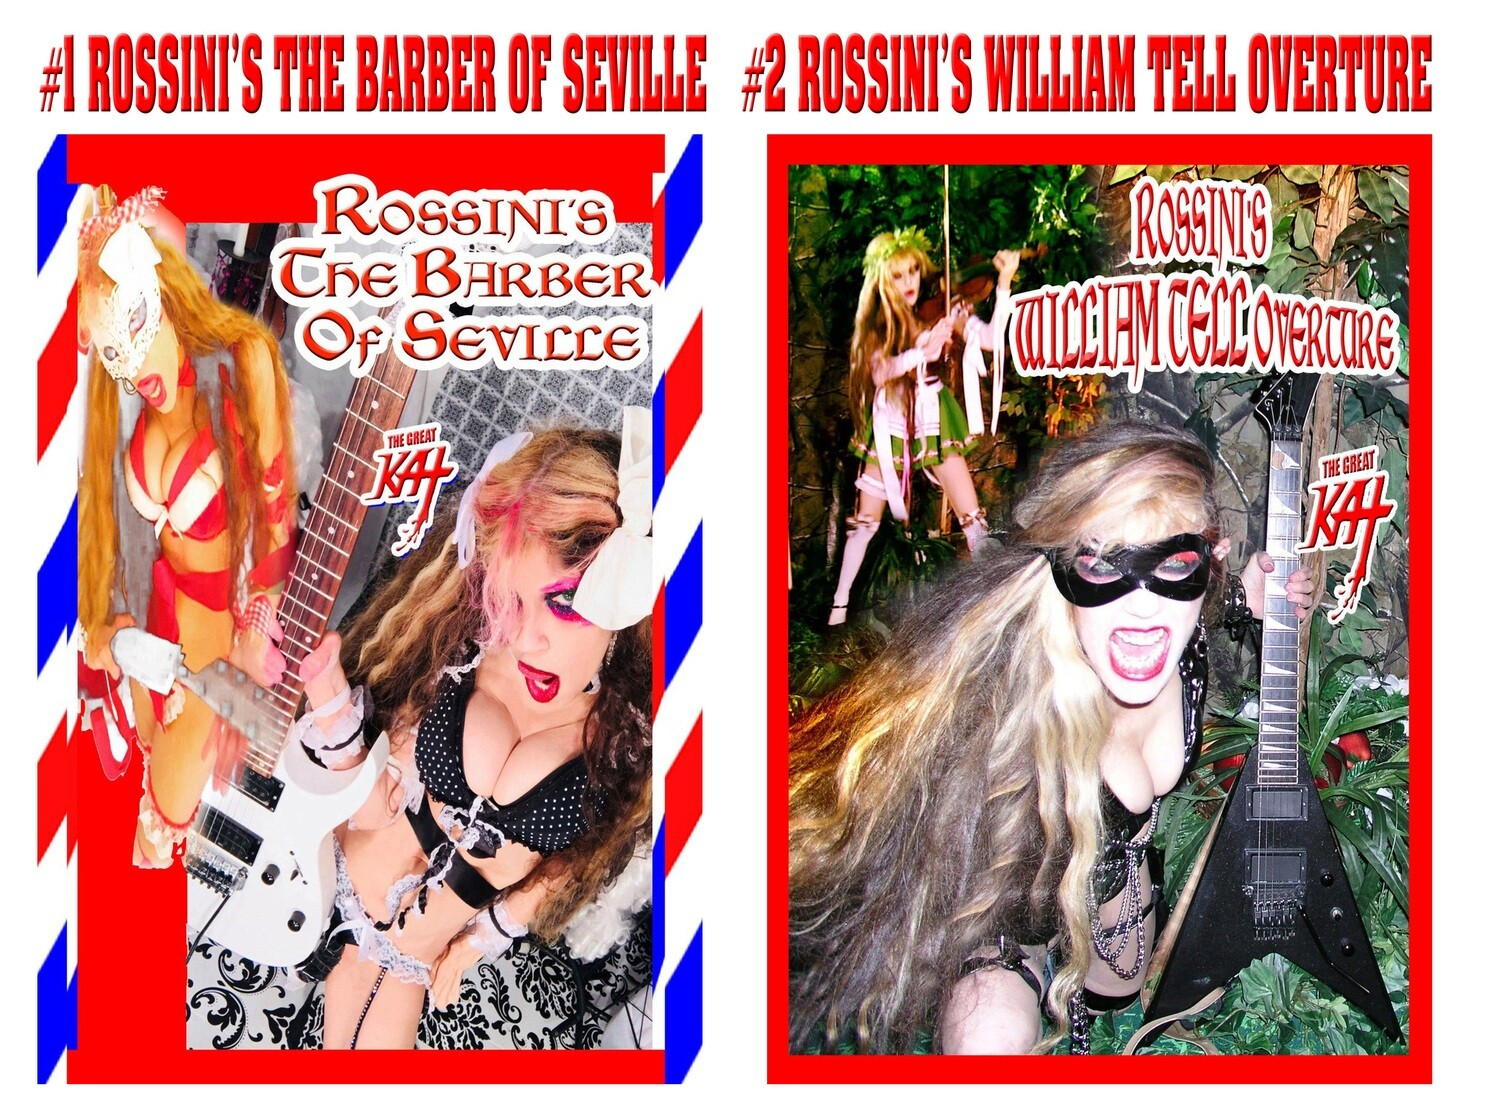 """ROSSINI MUSIC VIDEO SINGLE DVDS! """"THE BARBER OF SEVILLE"""" (2:14) & """"WILLIAM TELL OVERTURE"""" MUSIC VIDEO SINGLE DVDS (1:52)! PERSONALIZED AUTOGRAPHED by GREAT KAT! (Signed to Customer's Name) $19.99 EACH"""